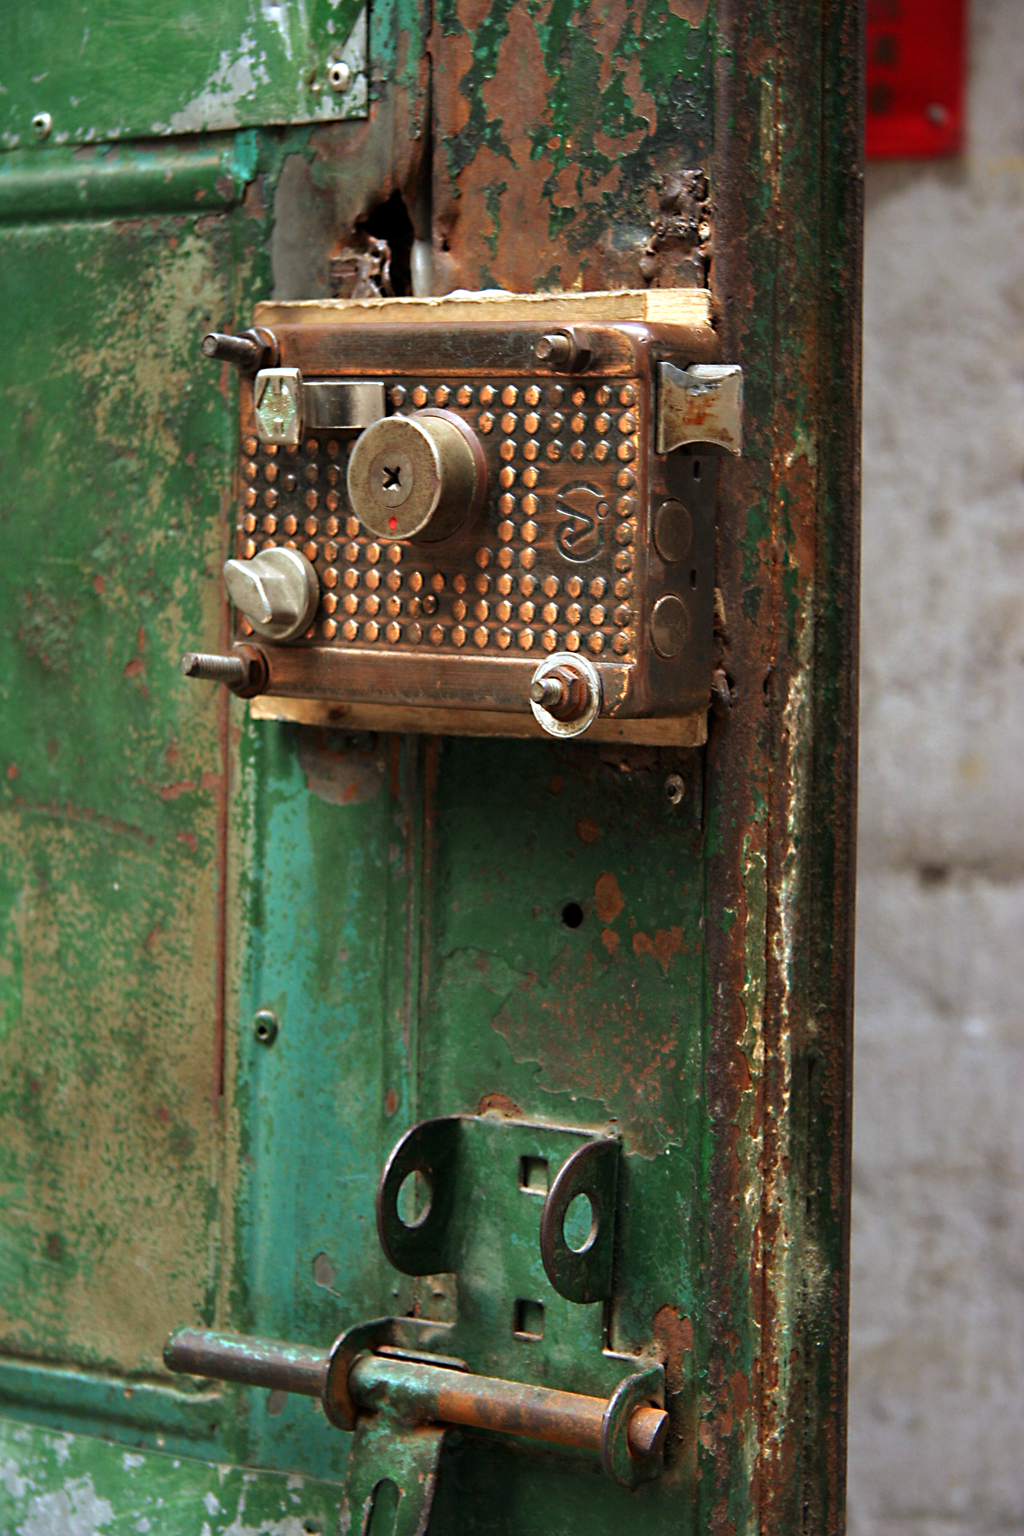 one of many locks on doors in china a chepikian paul